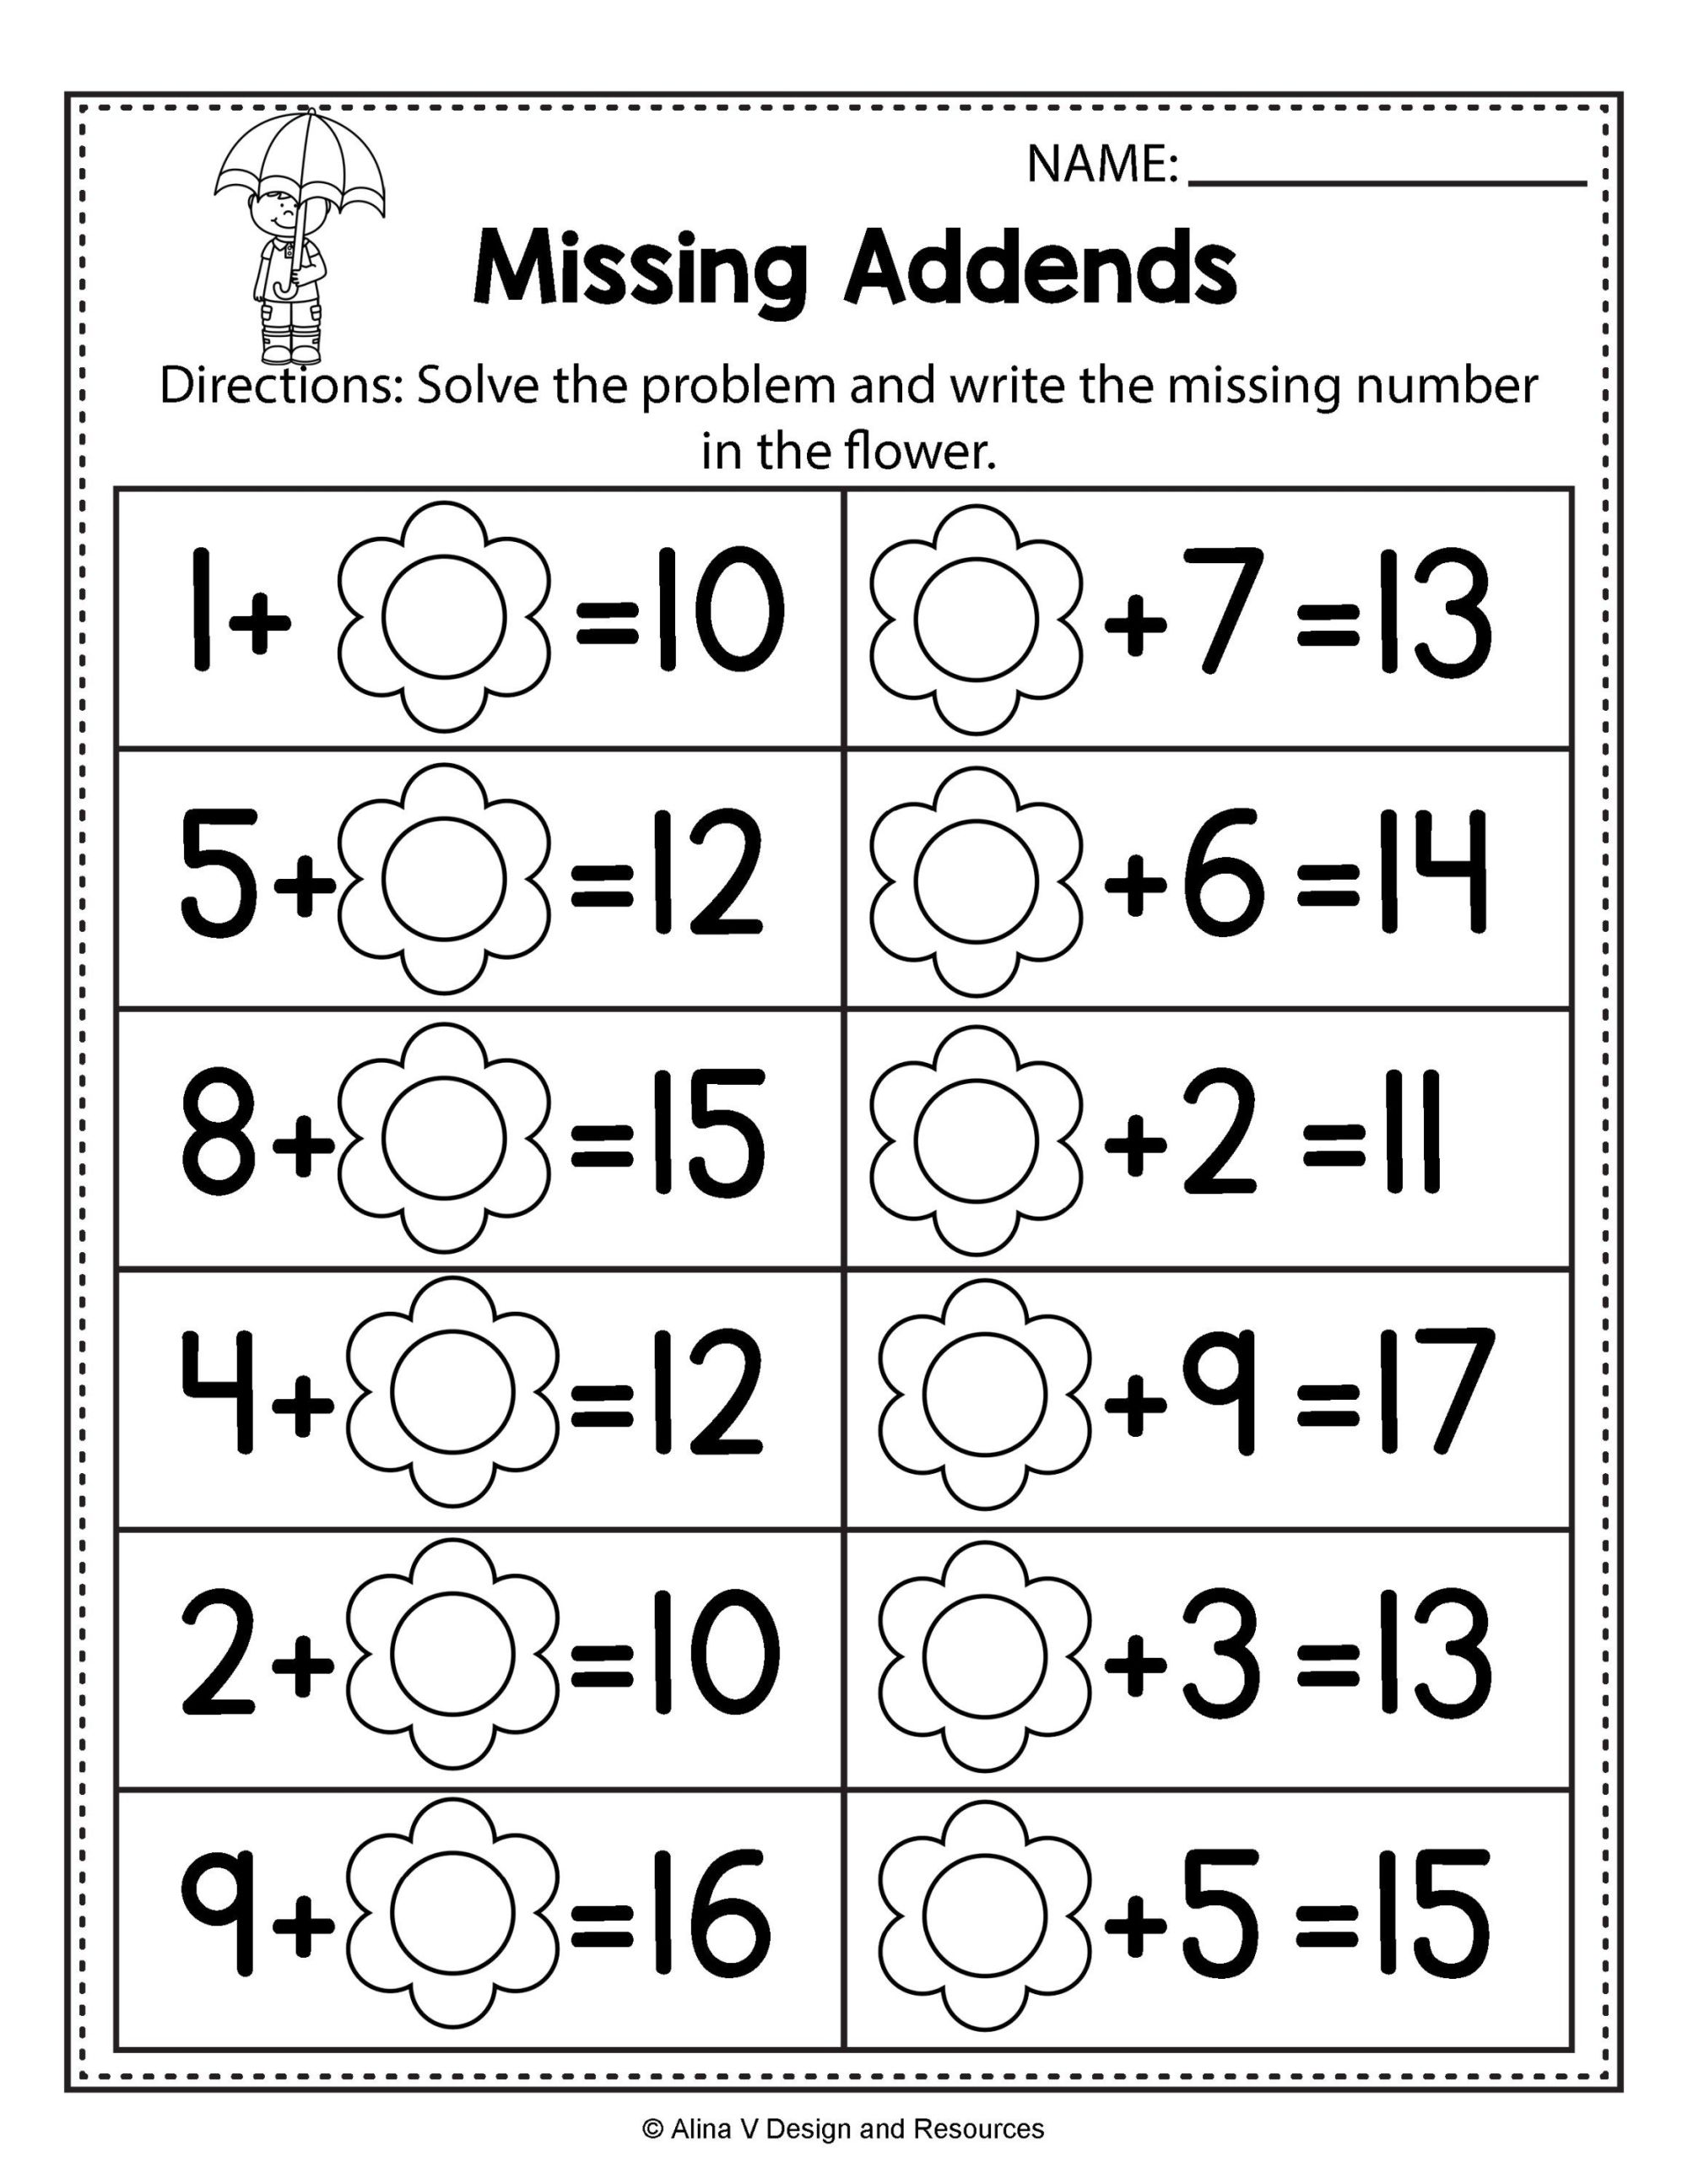 hight resolution of 23 Best 1th Grade Math Worksheets images on Best Worksheets Collection